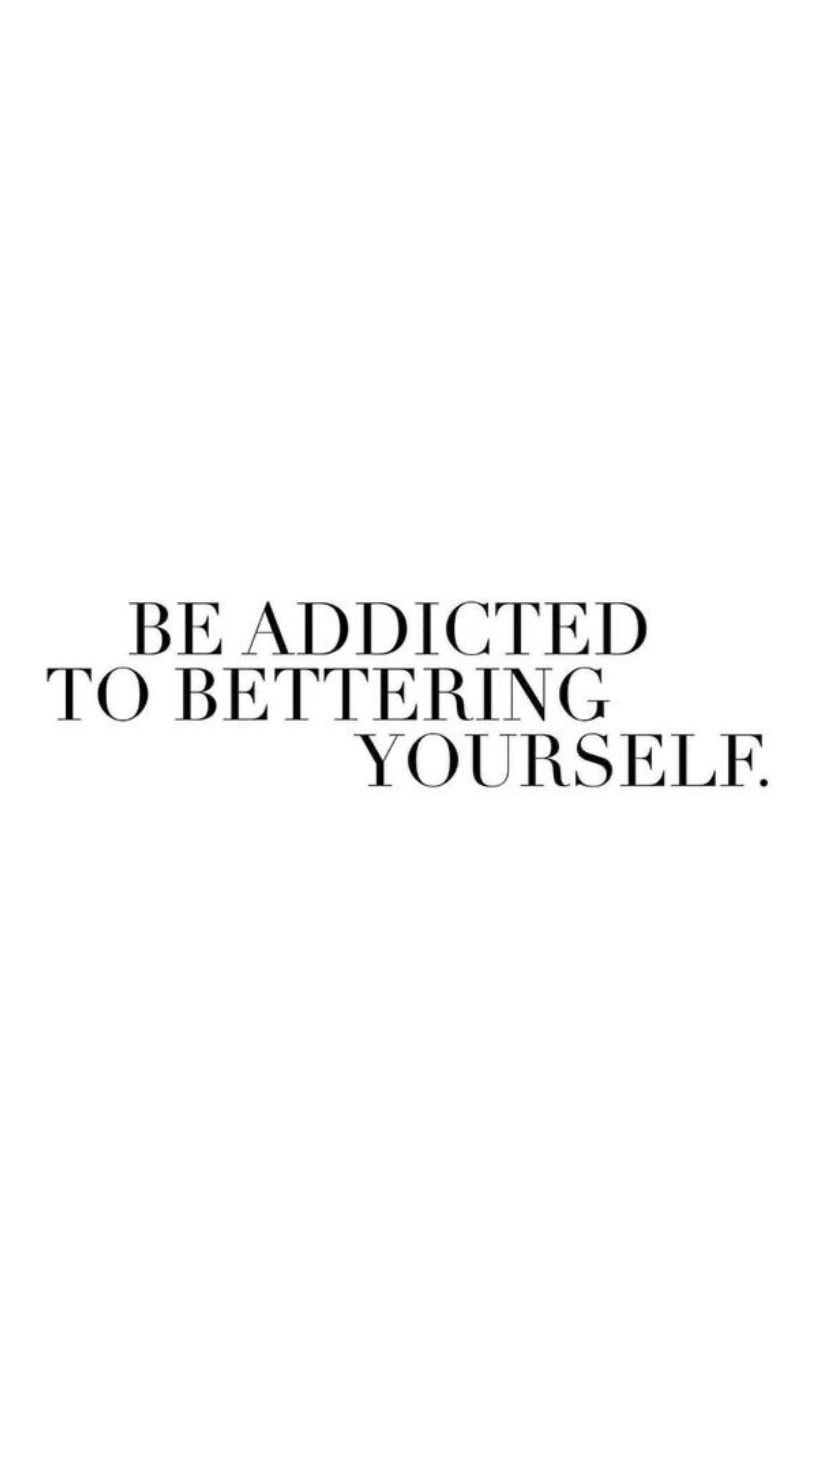 Be addicted to becoming the best version of you.